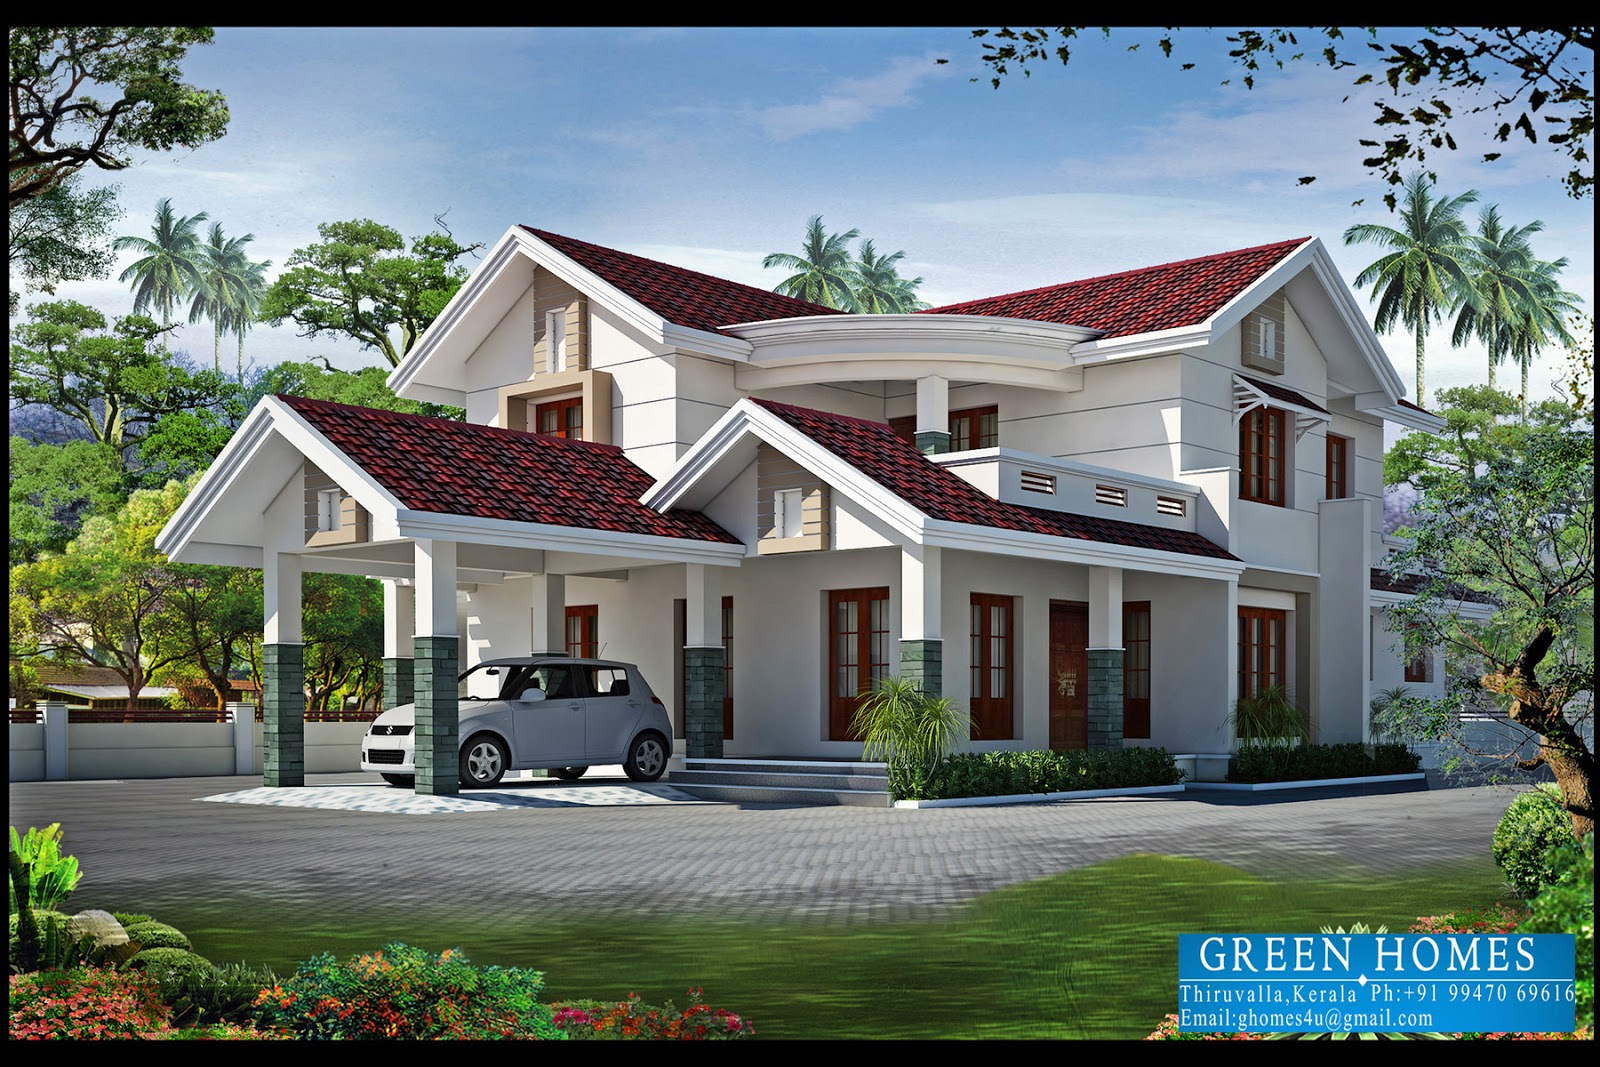 Green homes december 2012 for Home designs in kerala